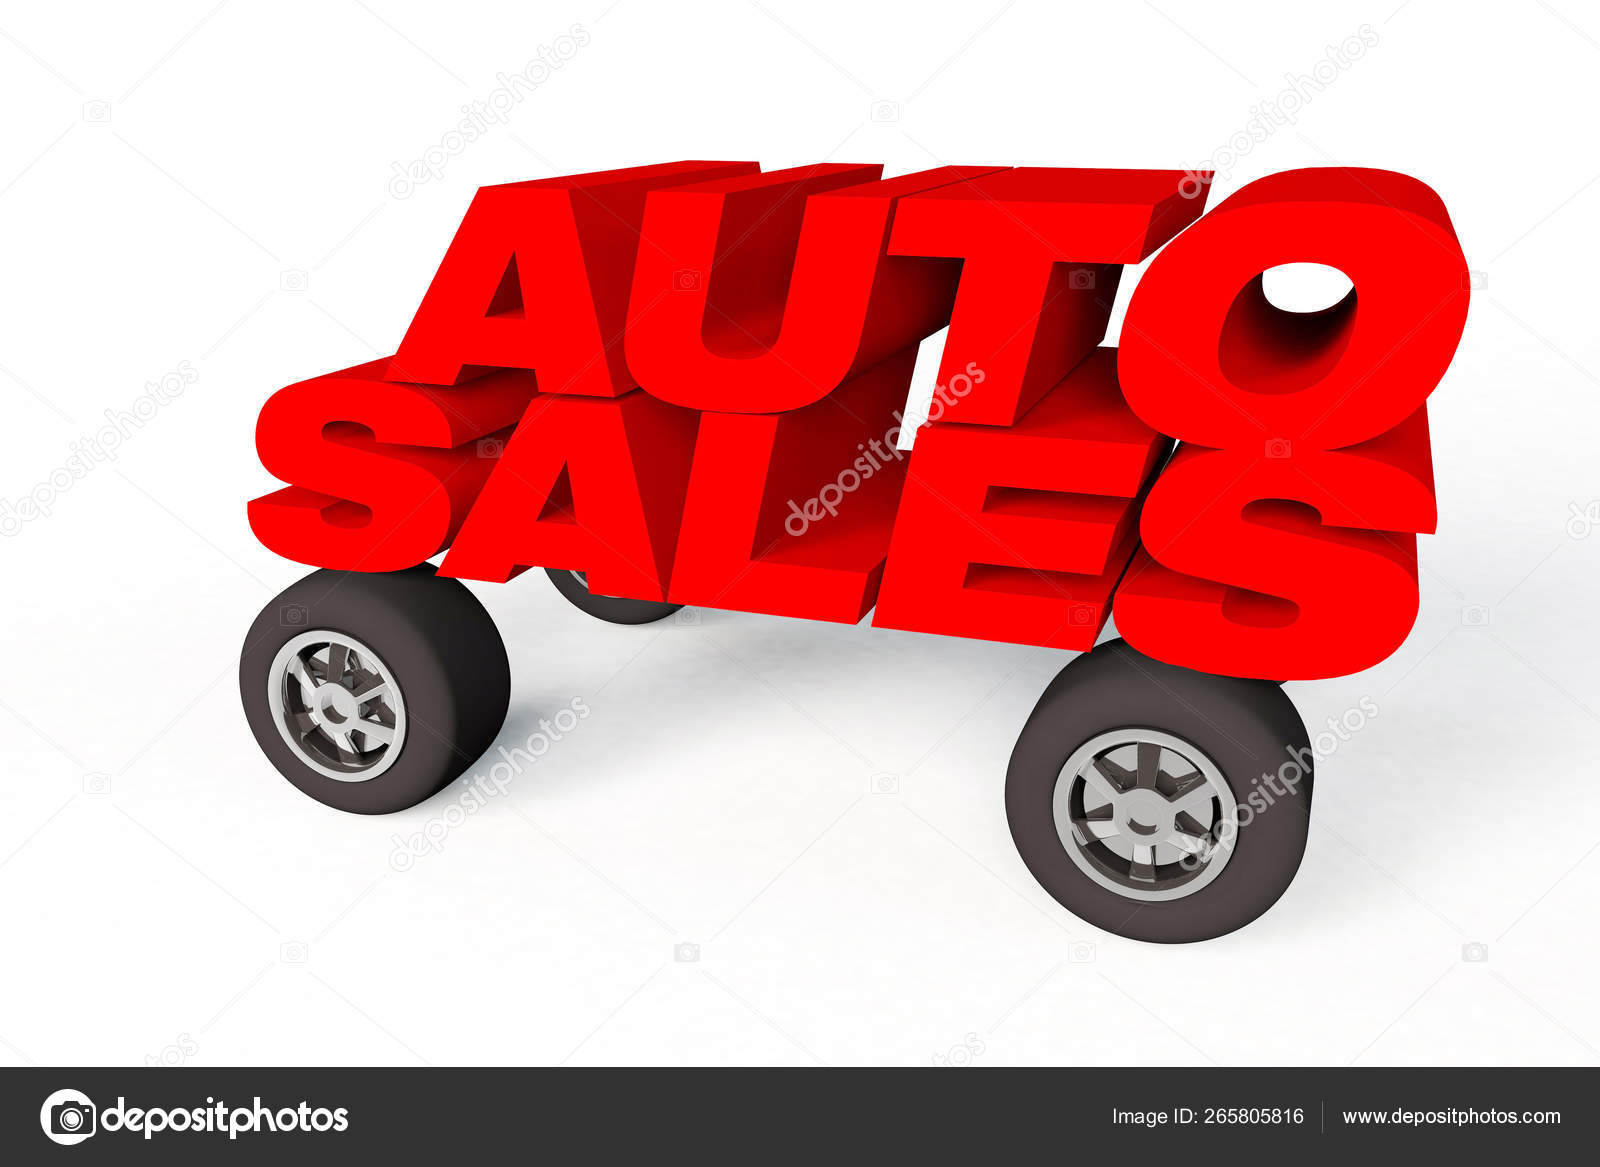 3D Auto Sales >> Auto Sales Logo On Car Whells Stock Photo C Joingate